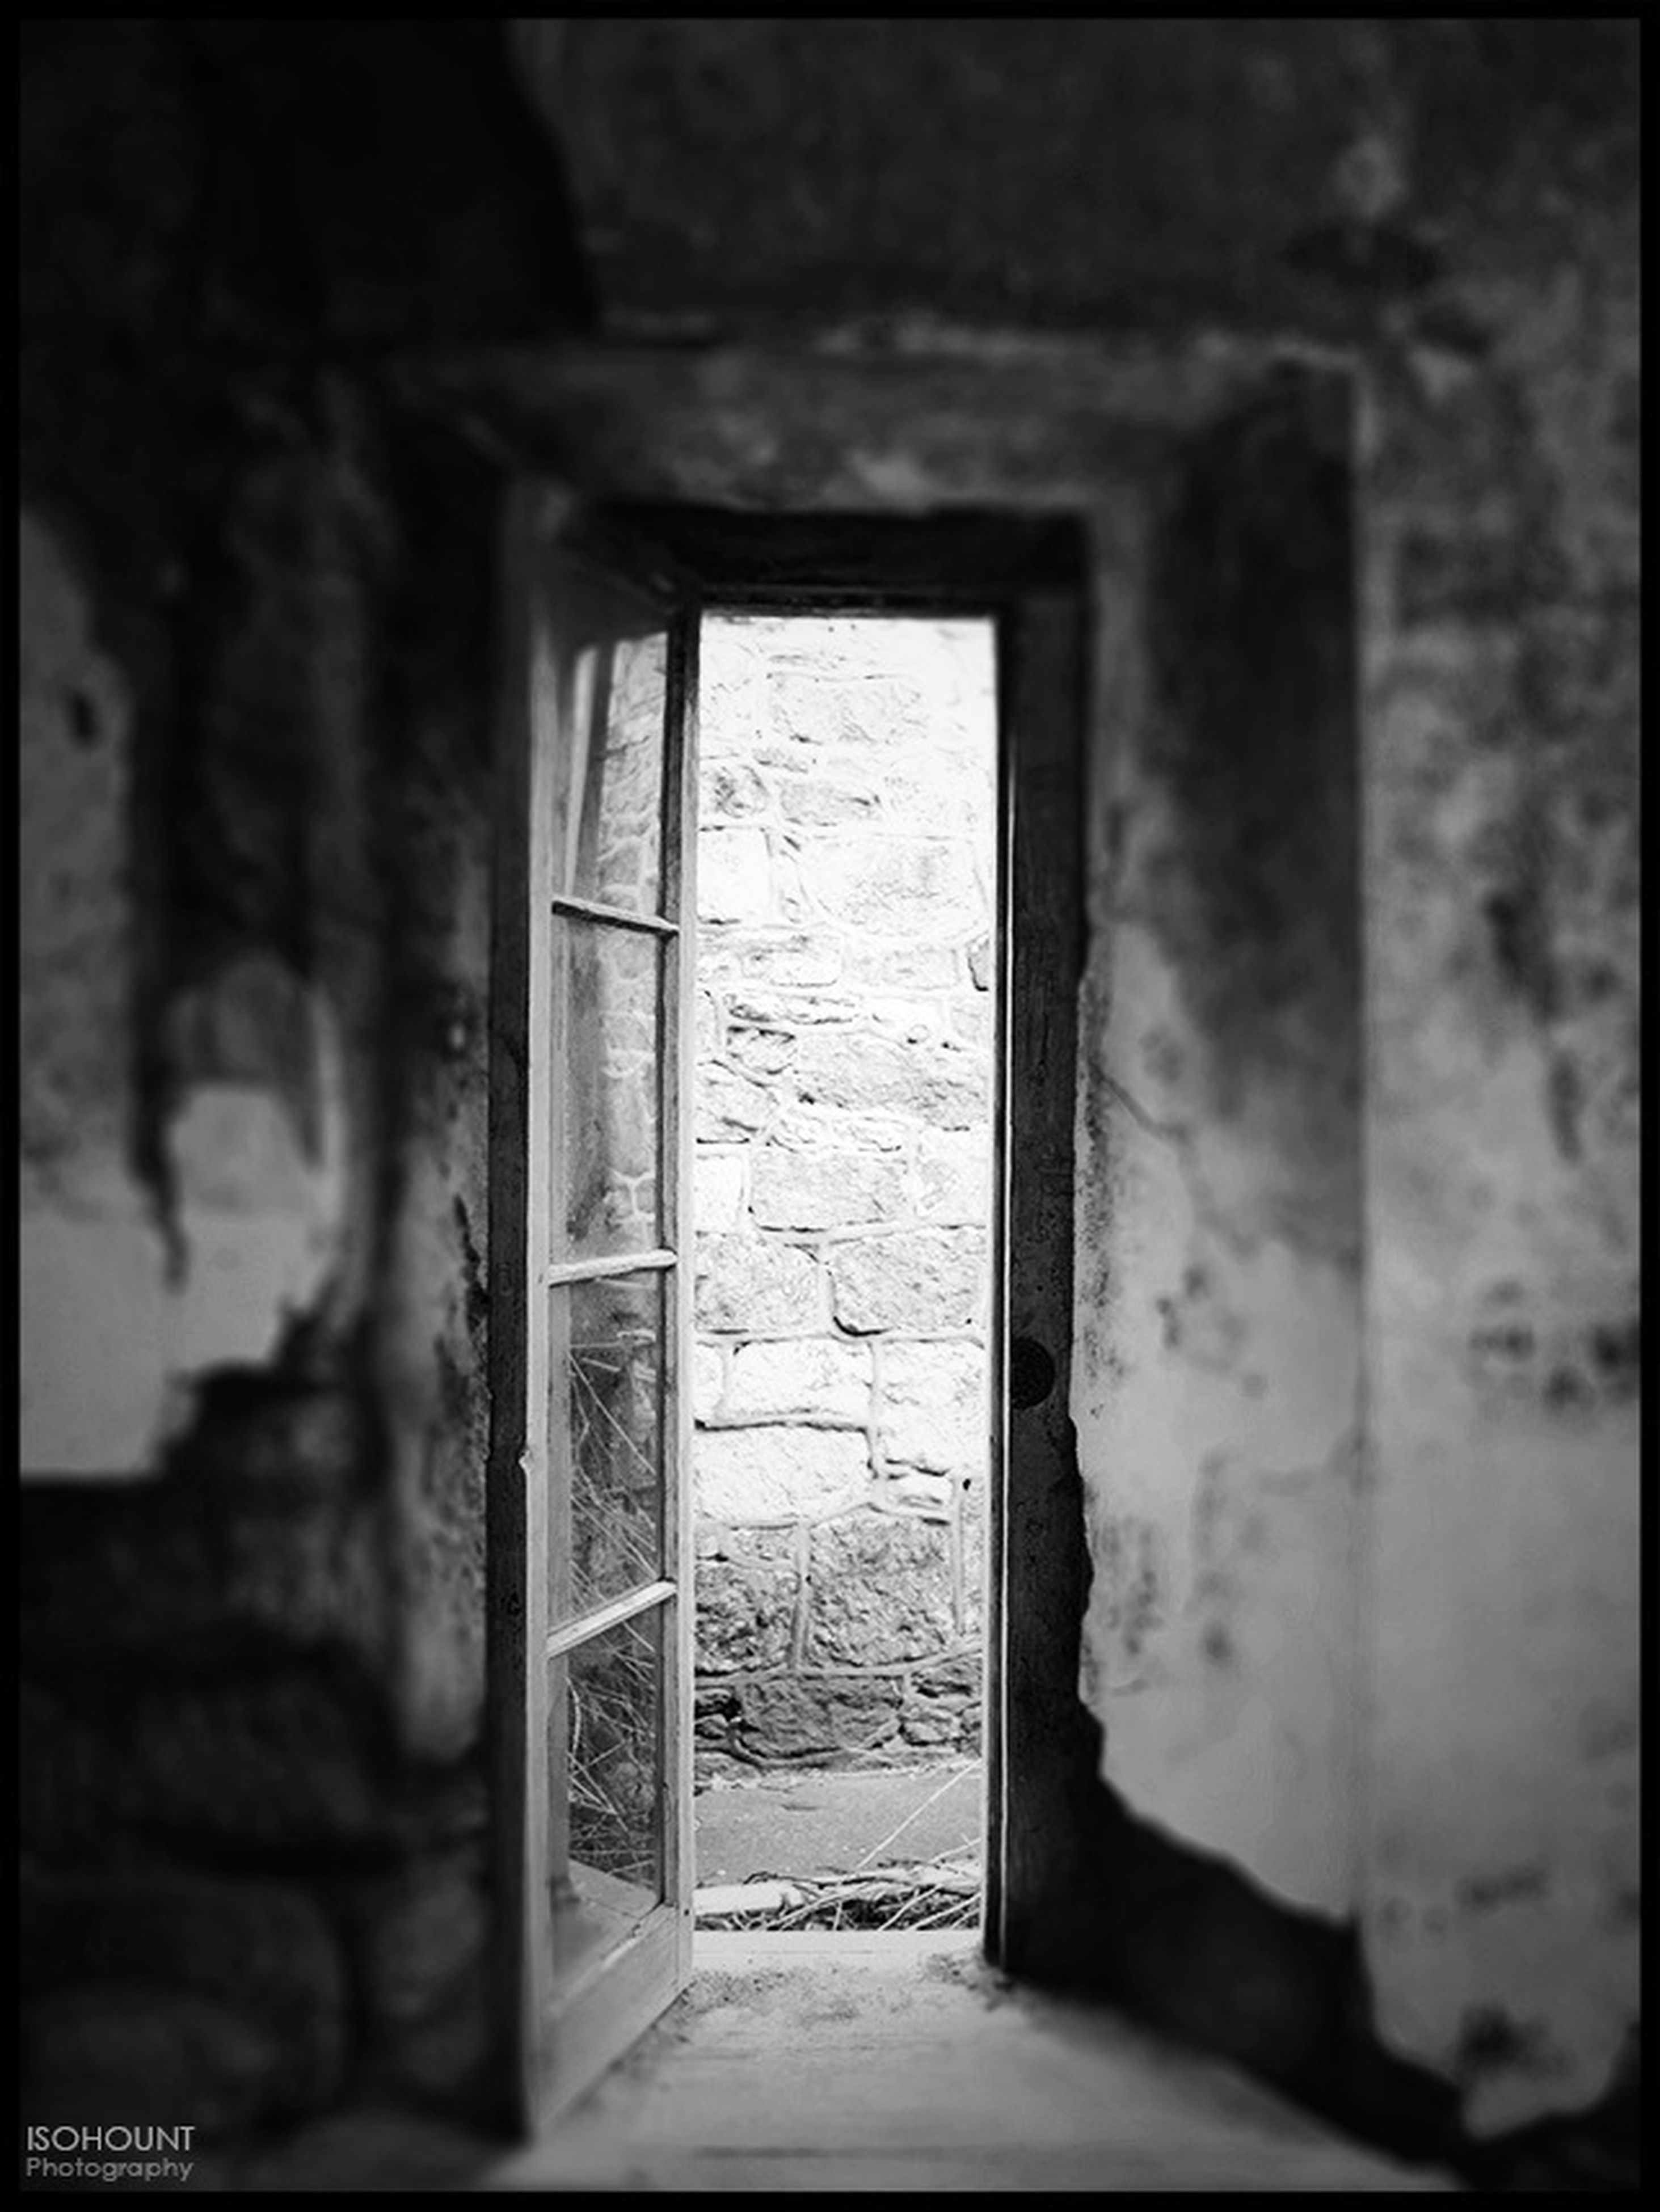 architecture, built structure, window, building exterior, old, indoors, door, abandoned, wall - building feature, house, closed, entrance, weathered, day, doorway, obsolete, damaged, wall, building, auto post production filter